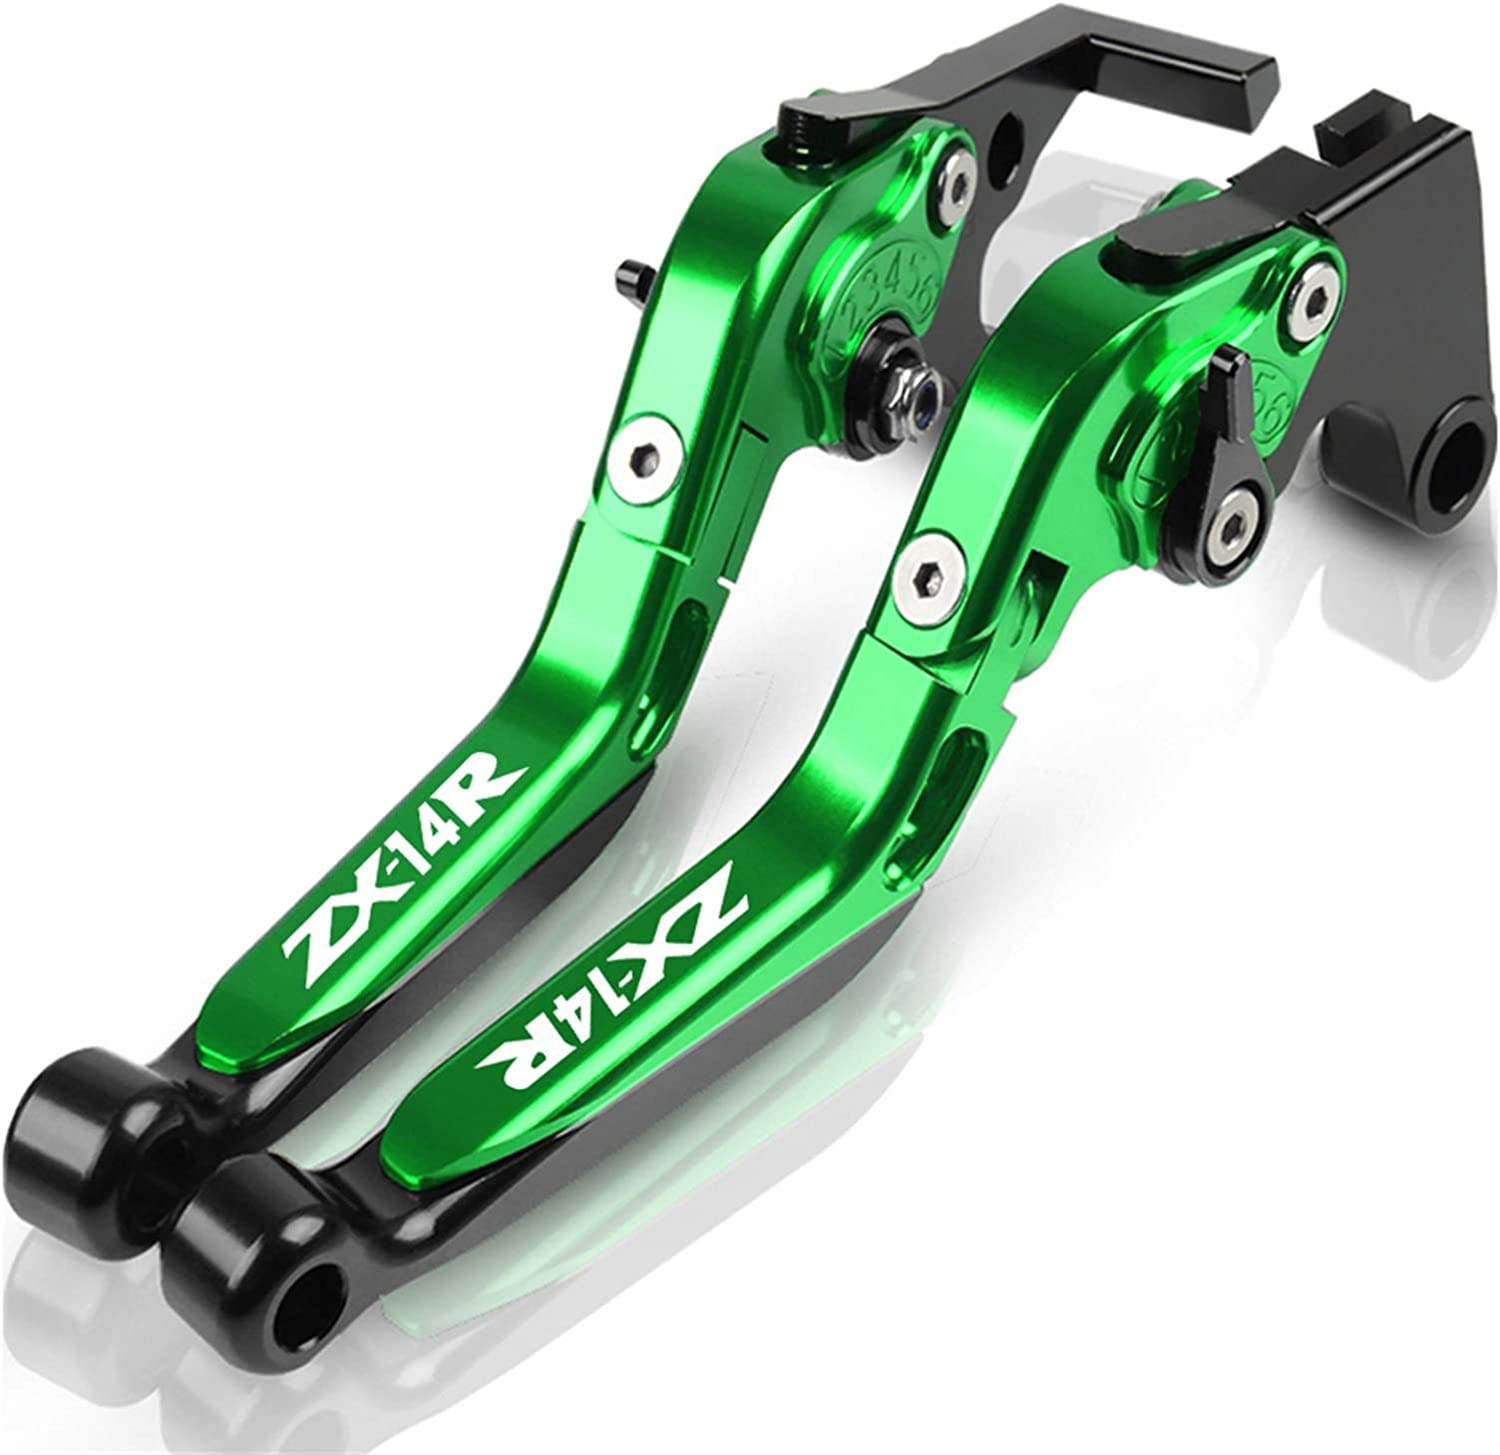 MHGJ Motorcycle High quality new ZX-14R Max 80% OFF Brakes Handle fo Clutch Levers